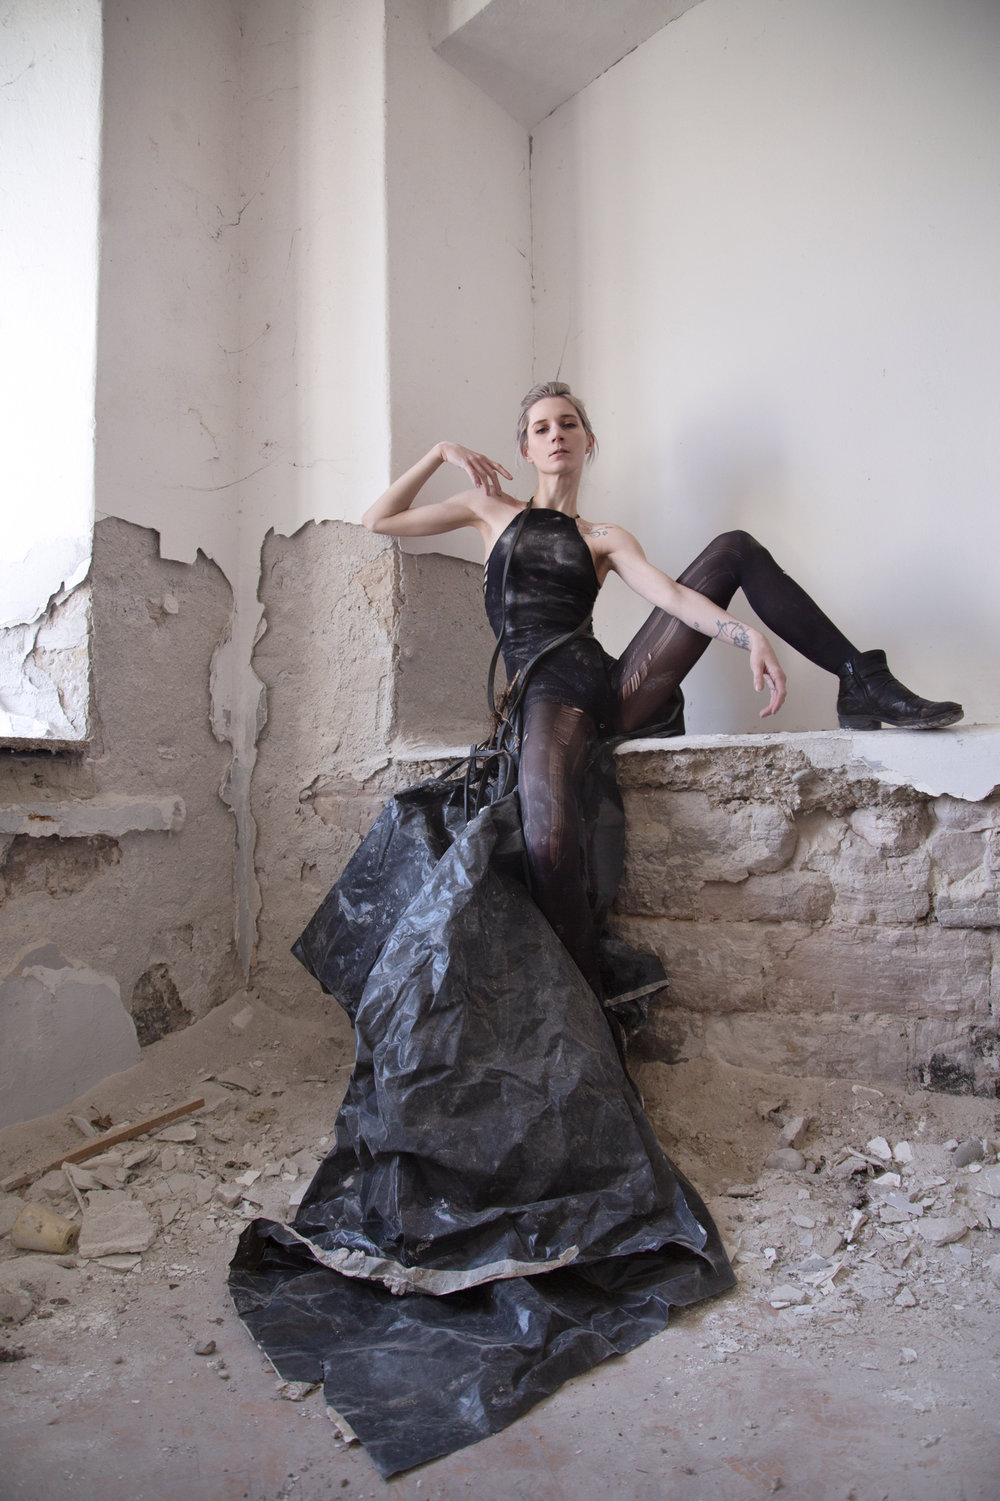 Roxanna Walitzki, shot by Redd Walitzki, in an abandoned building, wearing a dress constructed from plastic tarp and rope sourced on site. Pula, Croatia